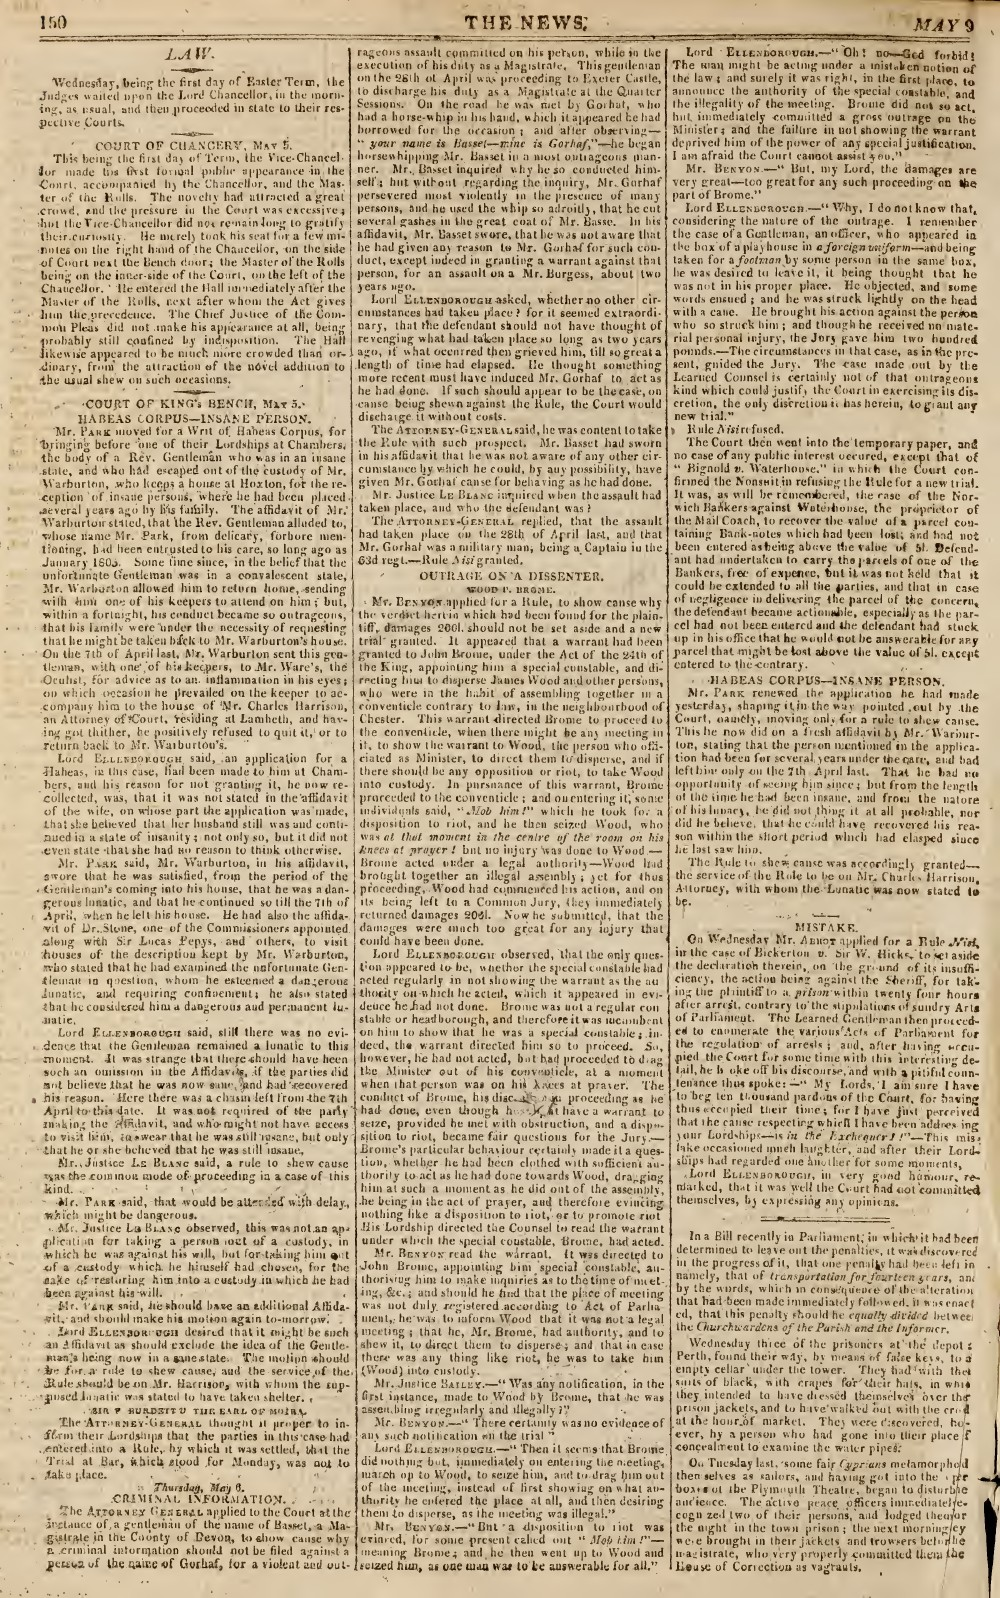 The News, 9 May 1813, No. 412